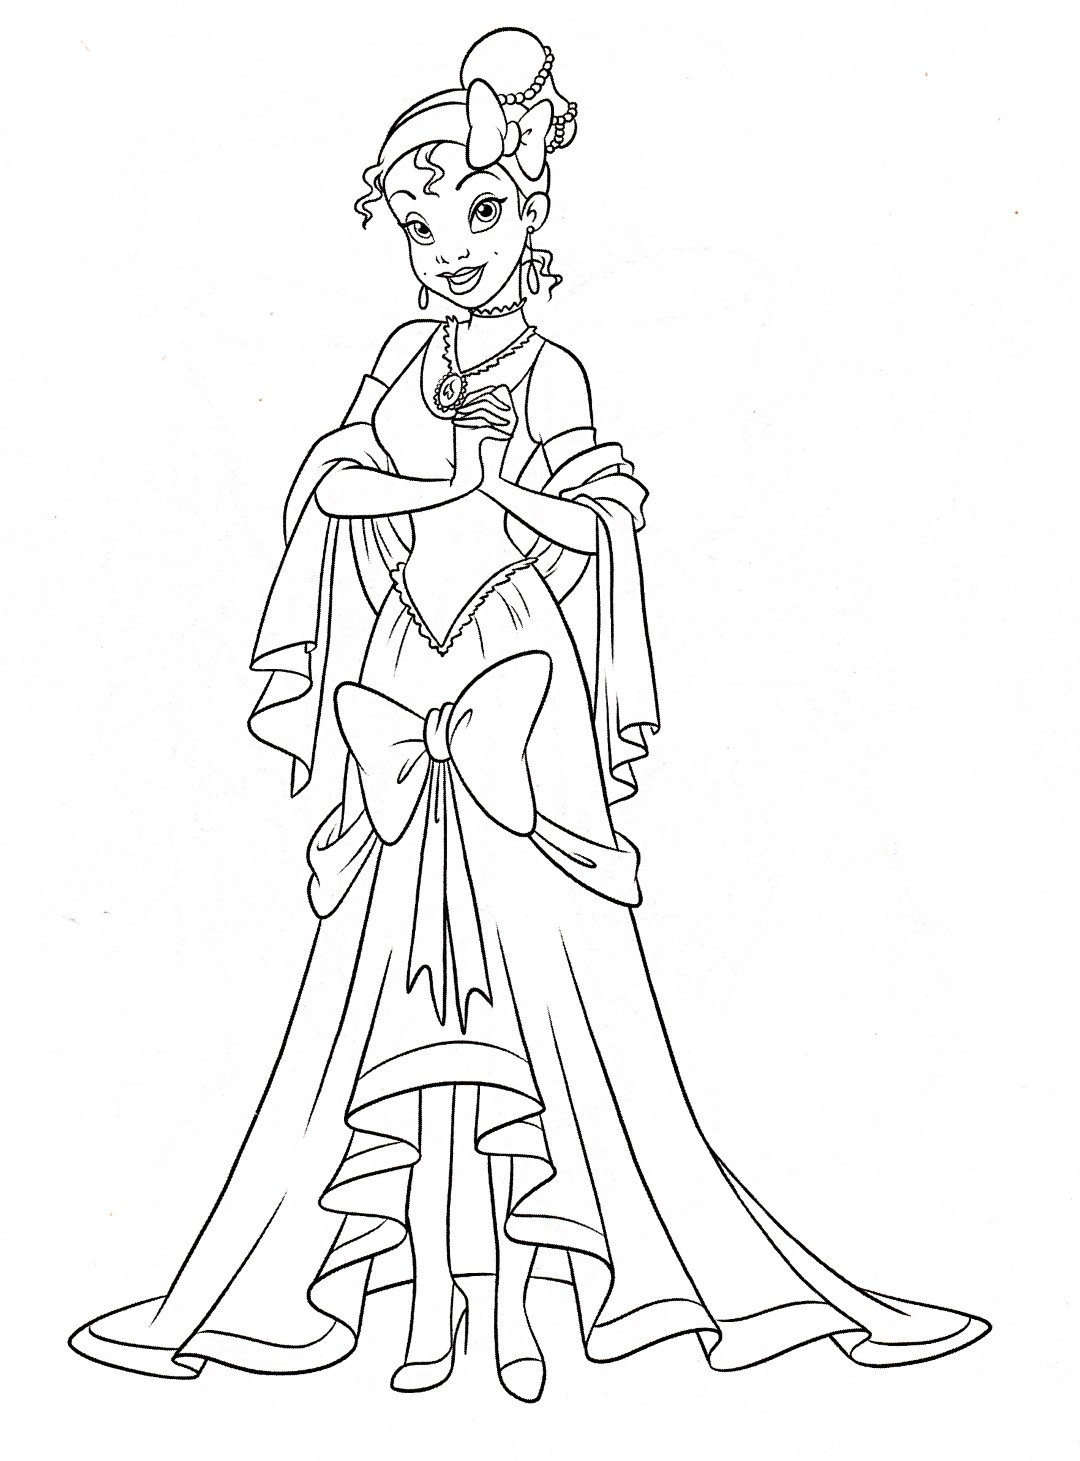 Tiana Disney Princess Coloring Pages